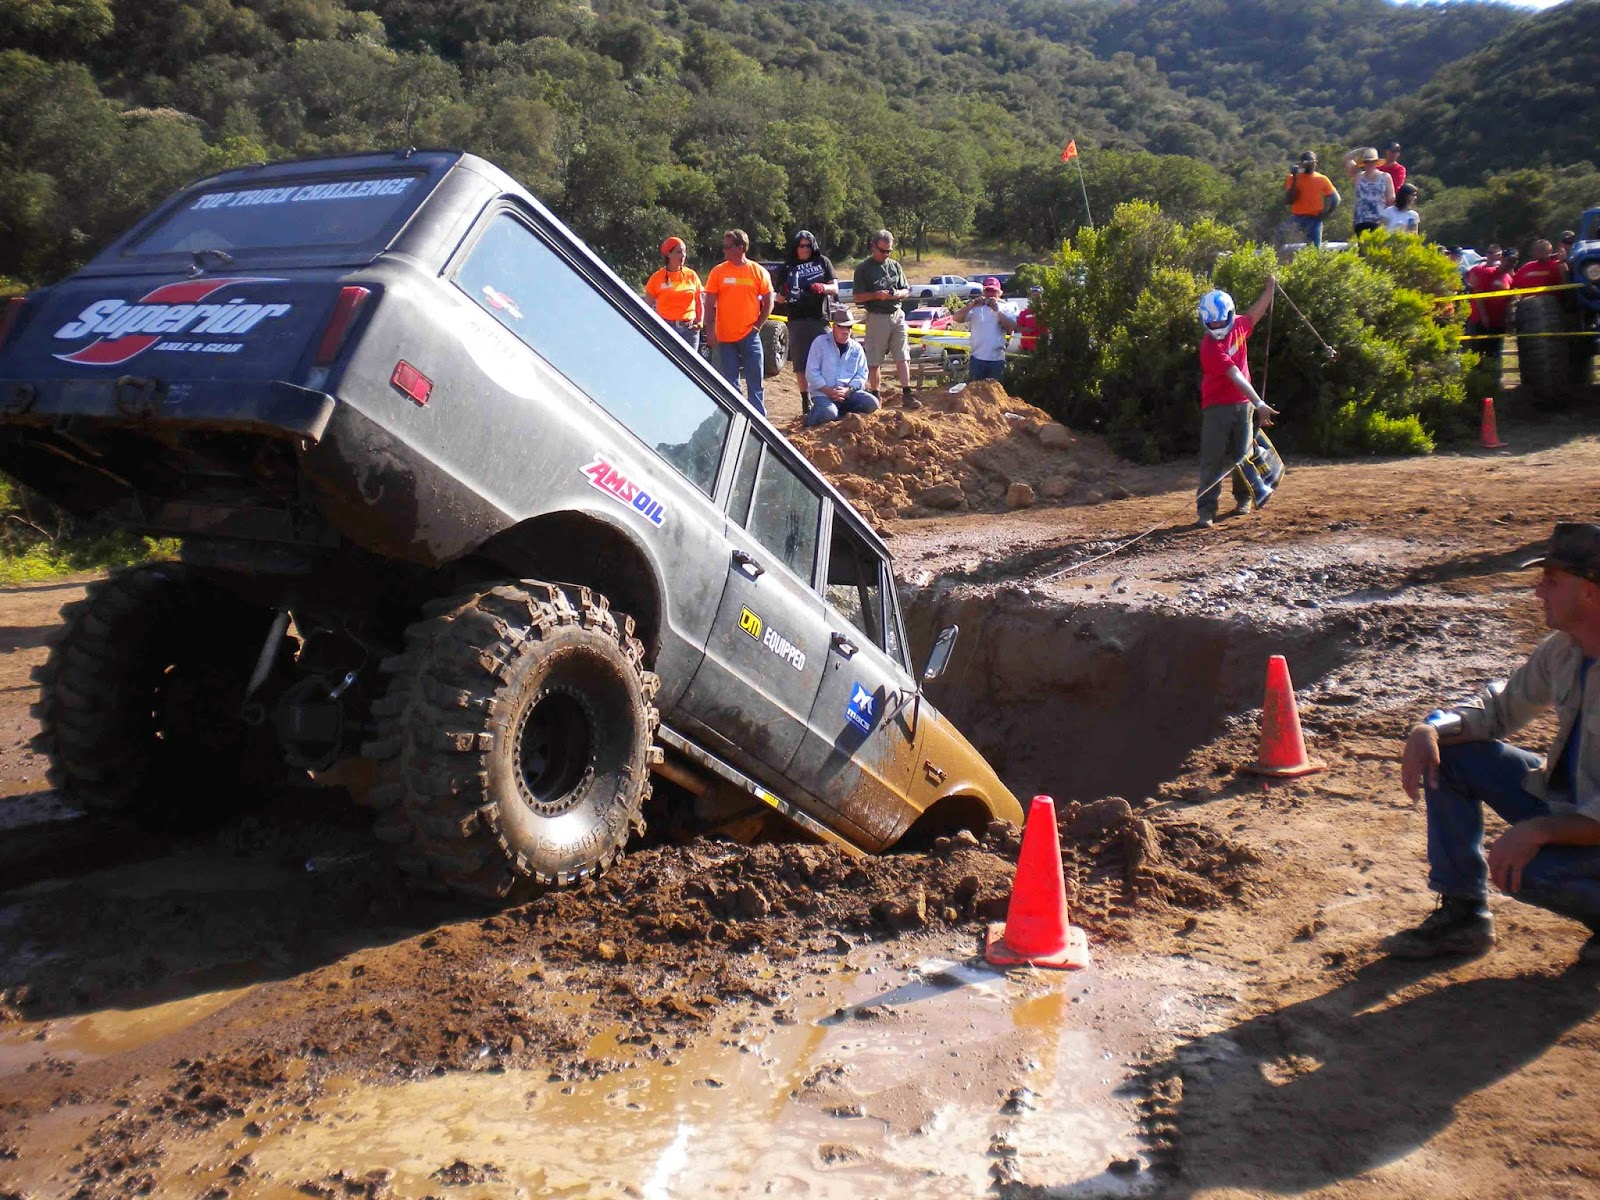 Sometimes the only way out is with a winch